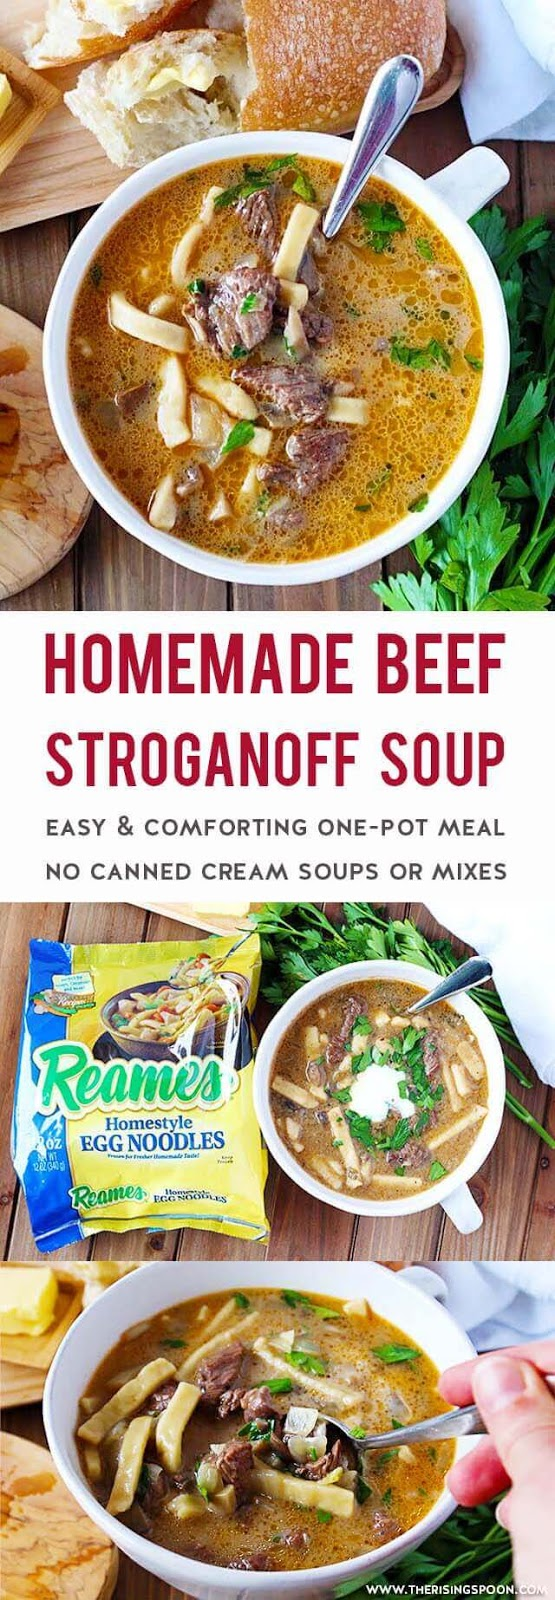 An Easy Beef Stroganoff Soup made in one pot on the stove-top using simple ingredients (no canned cream soups or mixes) in about one hour.  Each spoonful is packed with tender beef, earthy mushrooms, fragrant onion & garlic, thick & hearty noodles, and a rich, slightly creamy & savory broth. This is simple comfort food at its best! Fix a batch any time you're craving a delicious stick-to-your-ribs meal that'll keep you warm. #sponsored #Reames #Homemadegoodness #soup #souprecipes #easyrecipe #easyrecipes